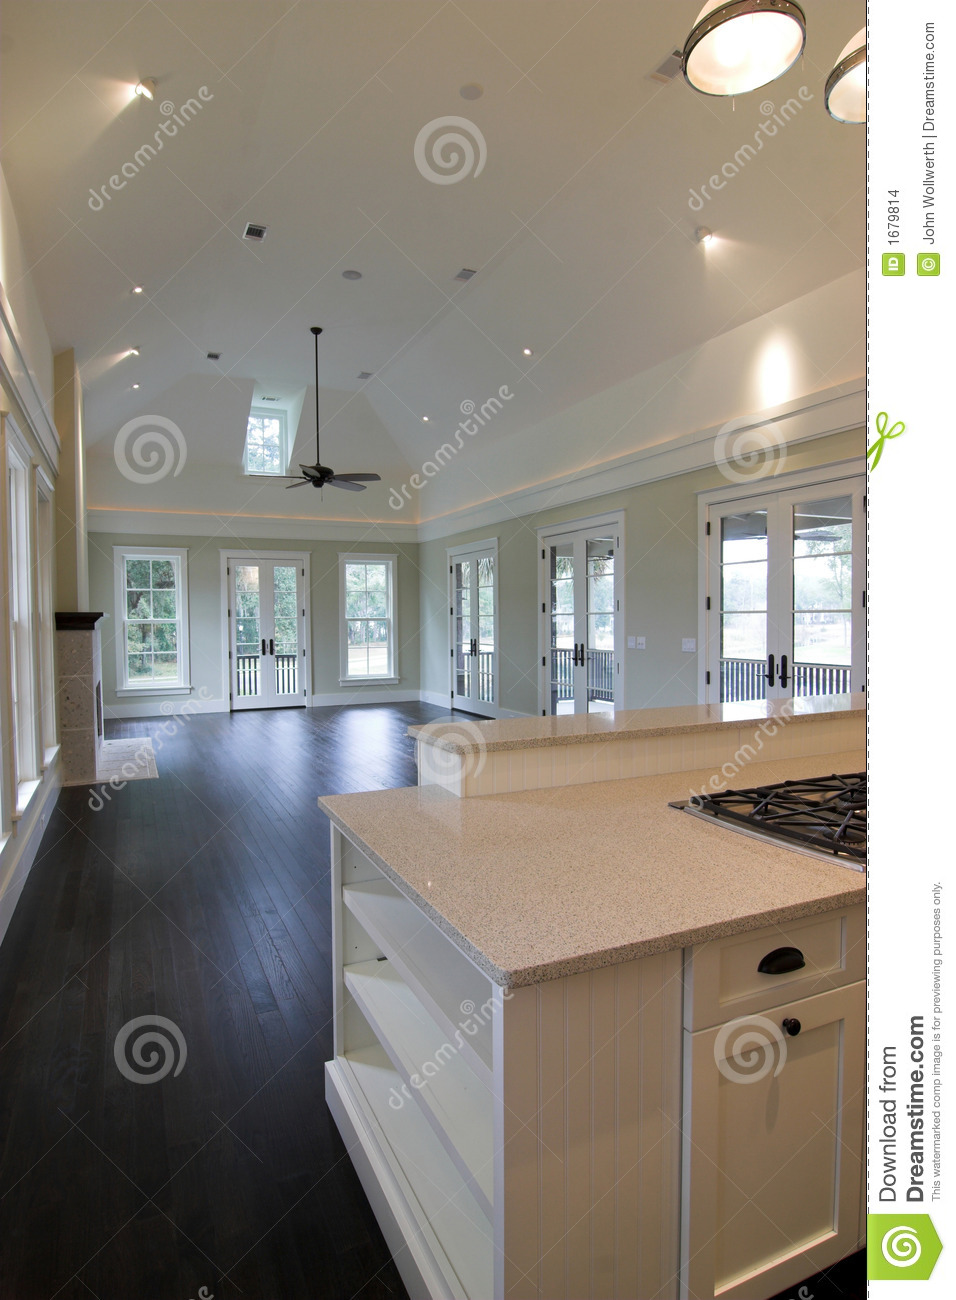 kitchen cabinet plans wusthof knives large studio apartment stock images - image: 1679814